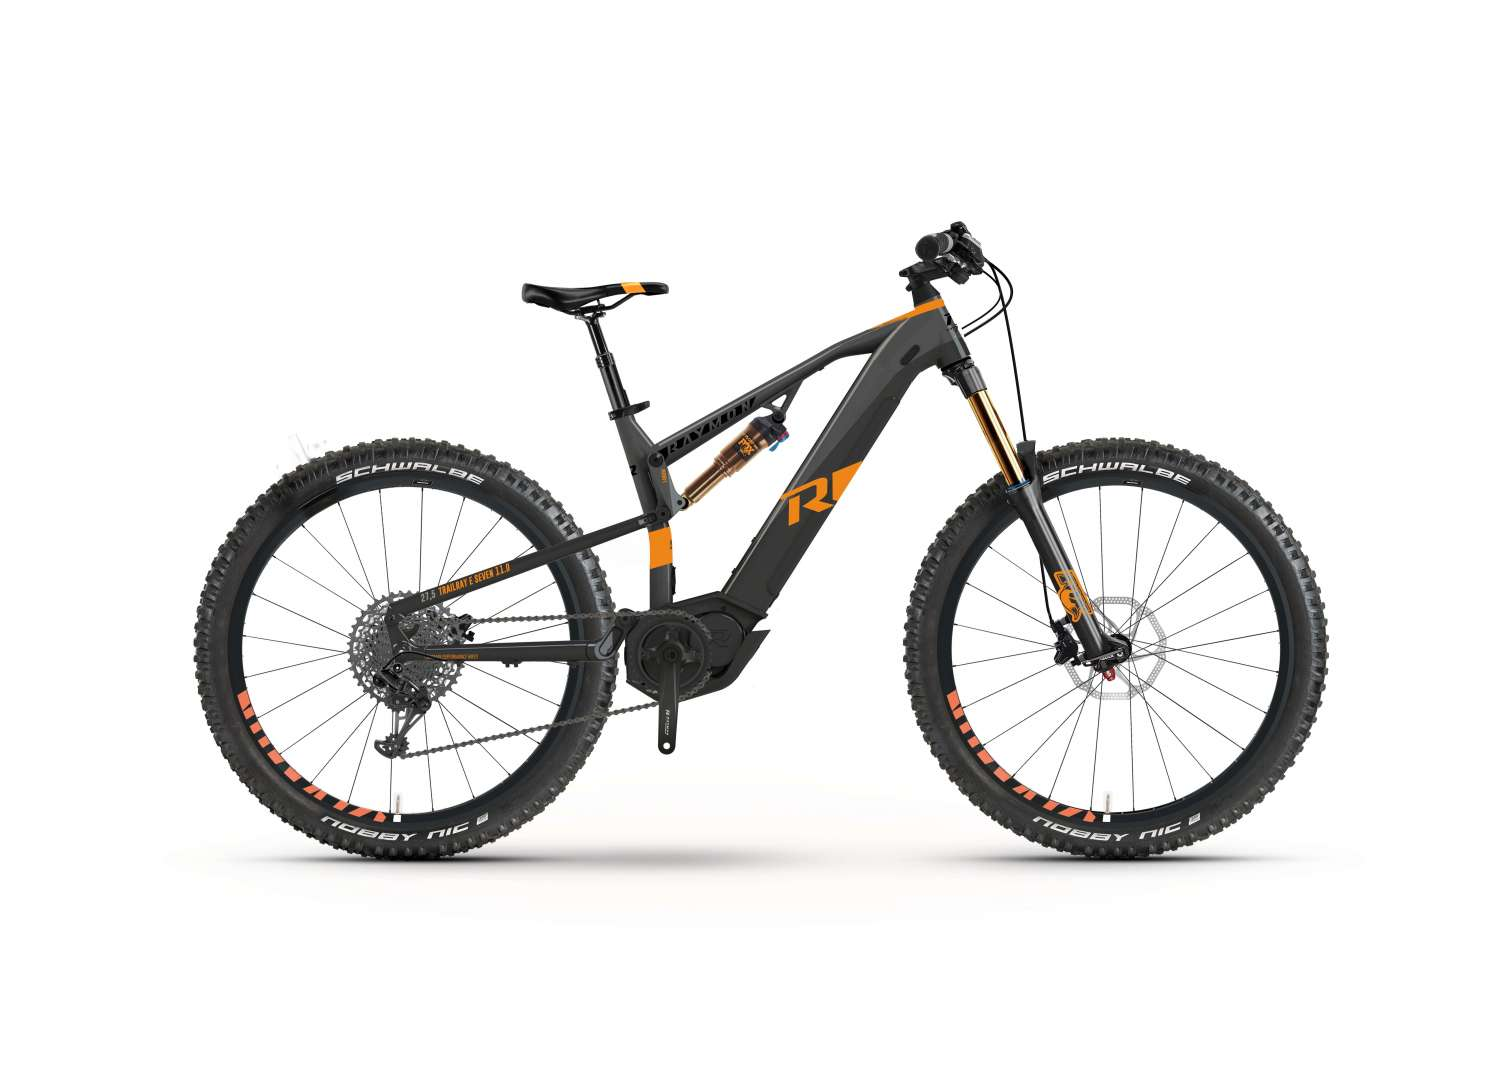 R Raymon Trailray E-Seven 11.0 2020